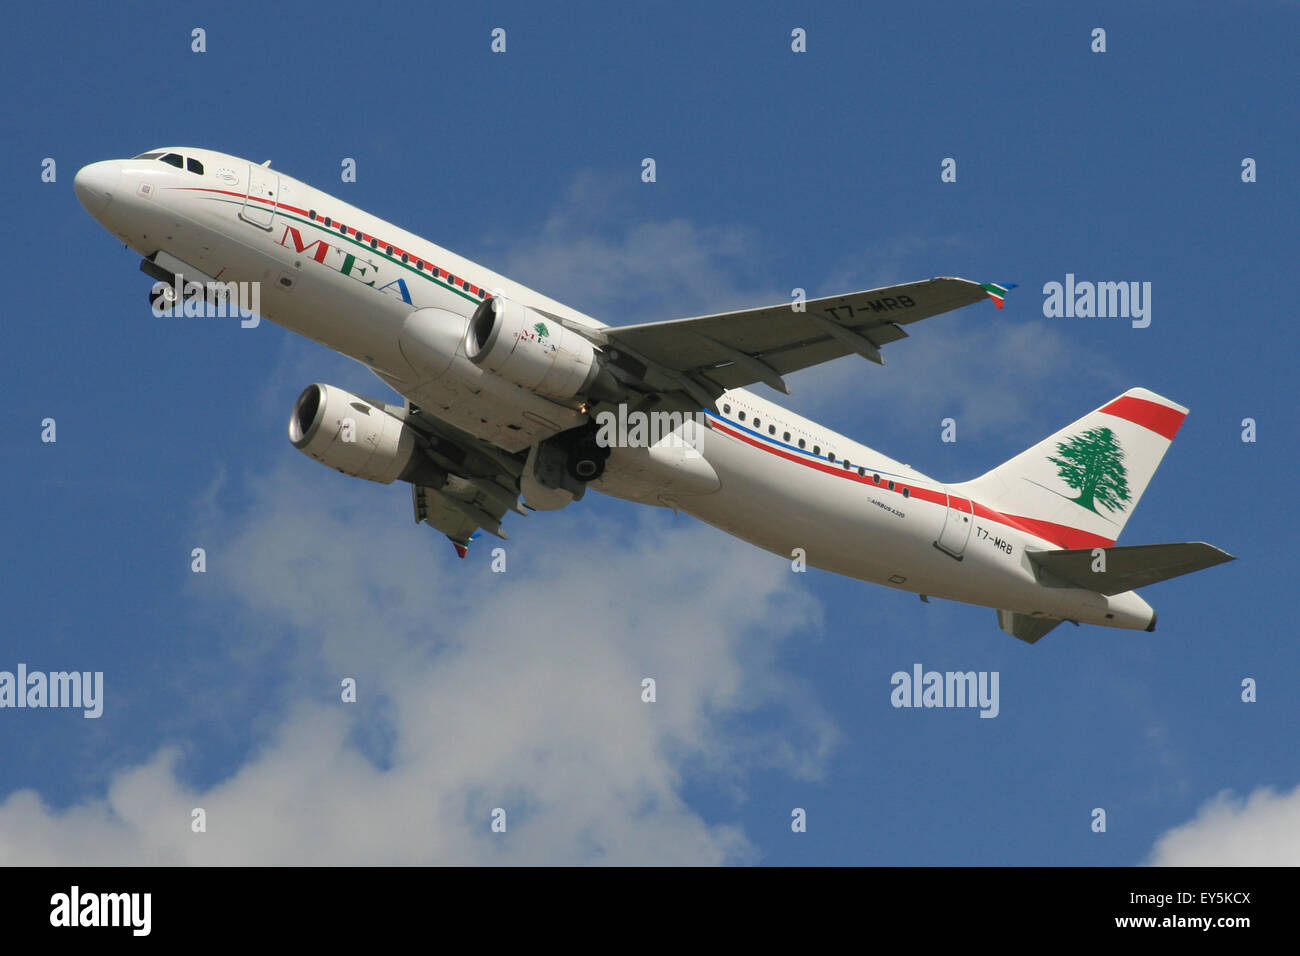 A320 MEA LIBAN BEYROUTH Moyen-orient Photo Stock